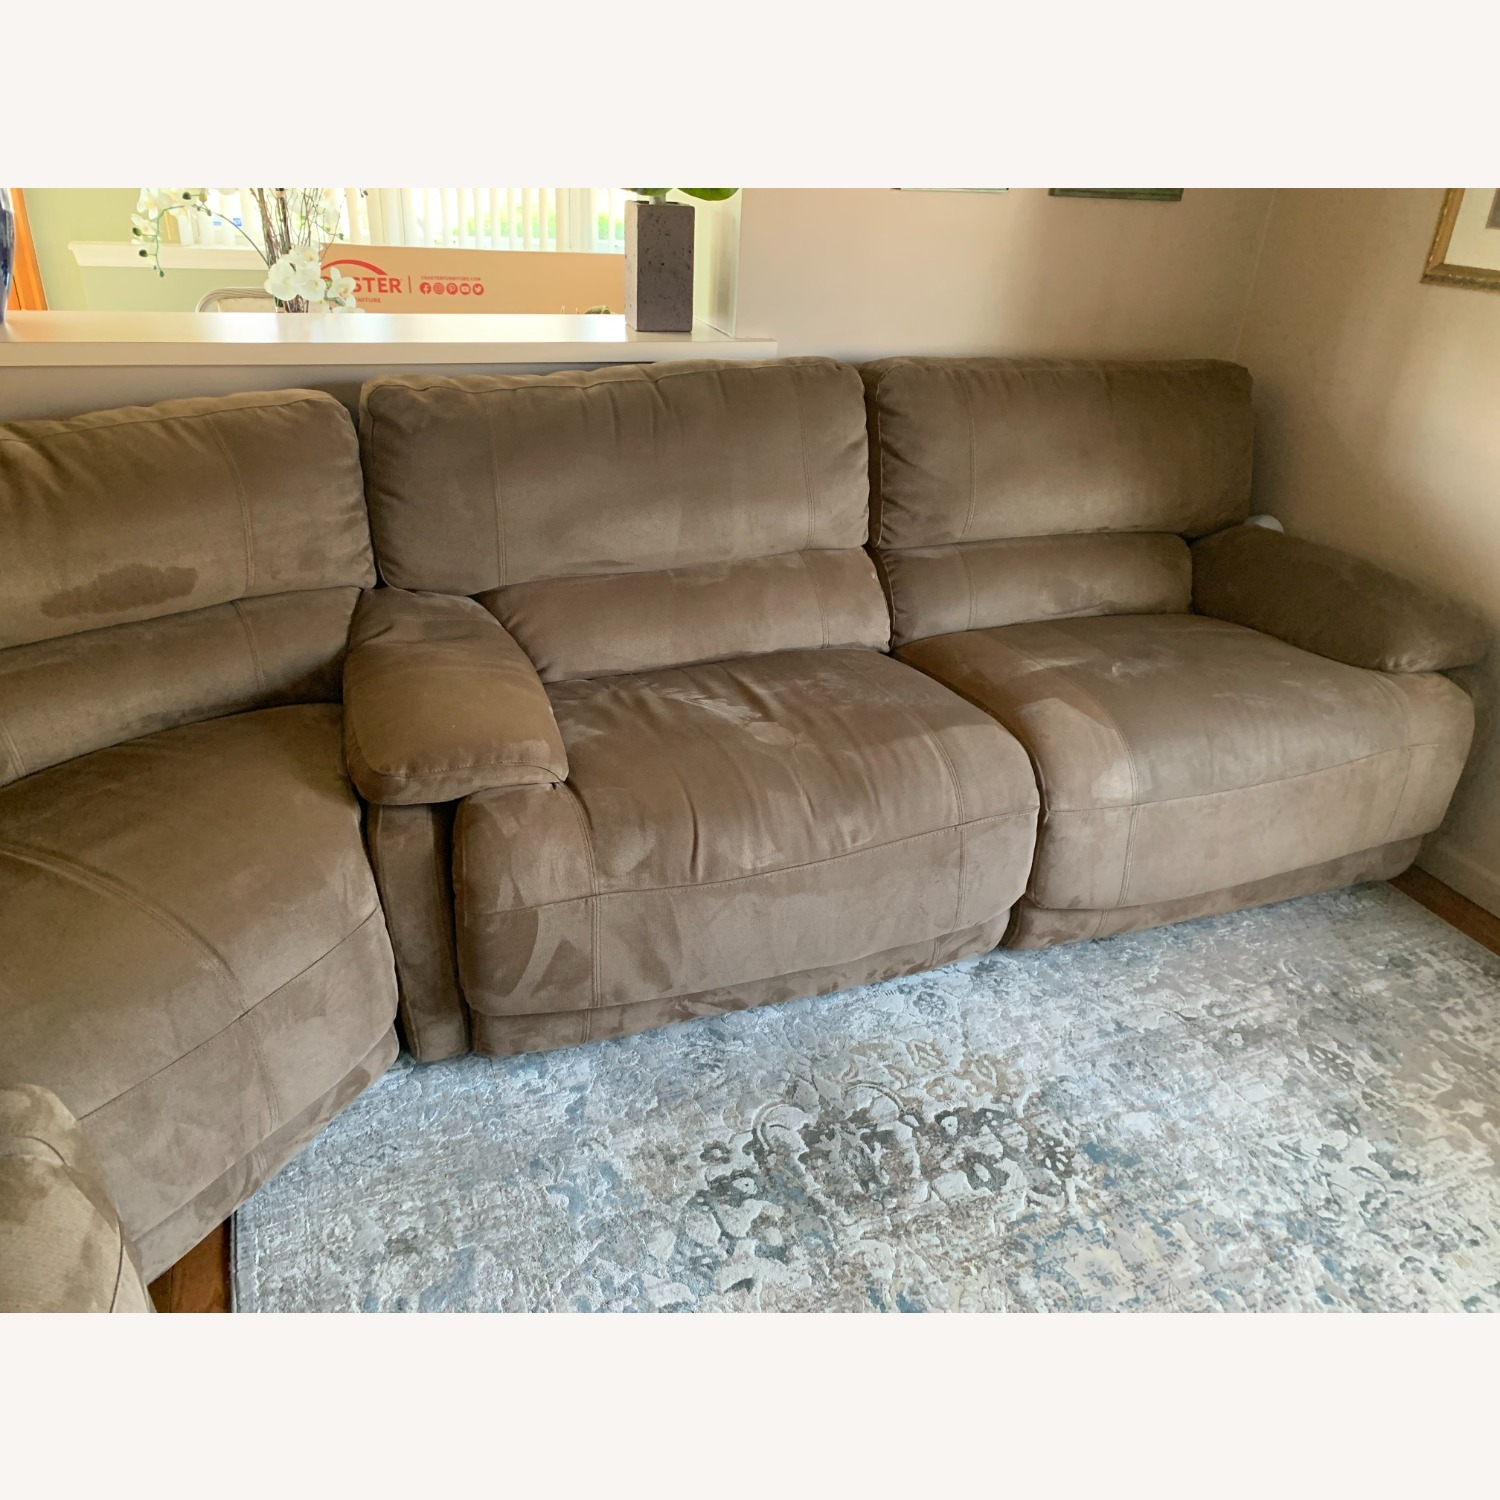 3 Piece Sectional Couch with Recliners - image-5